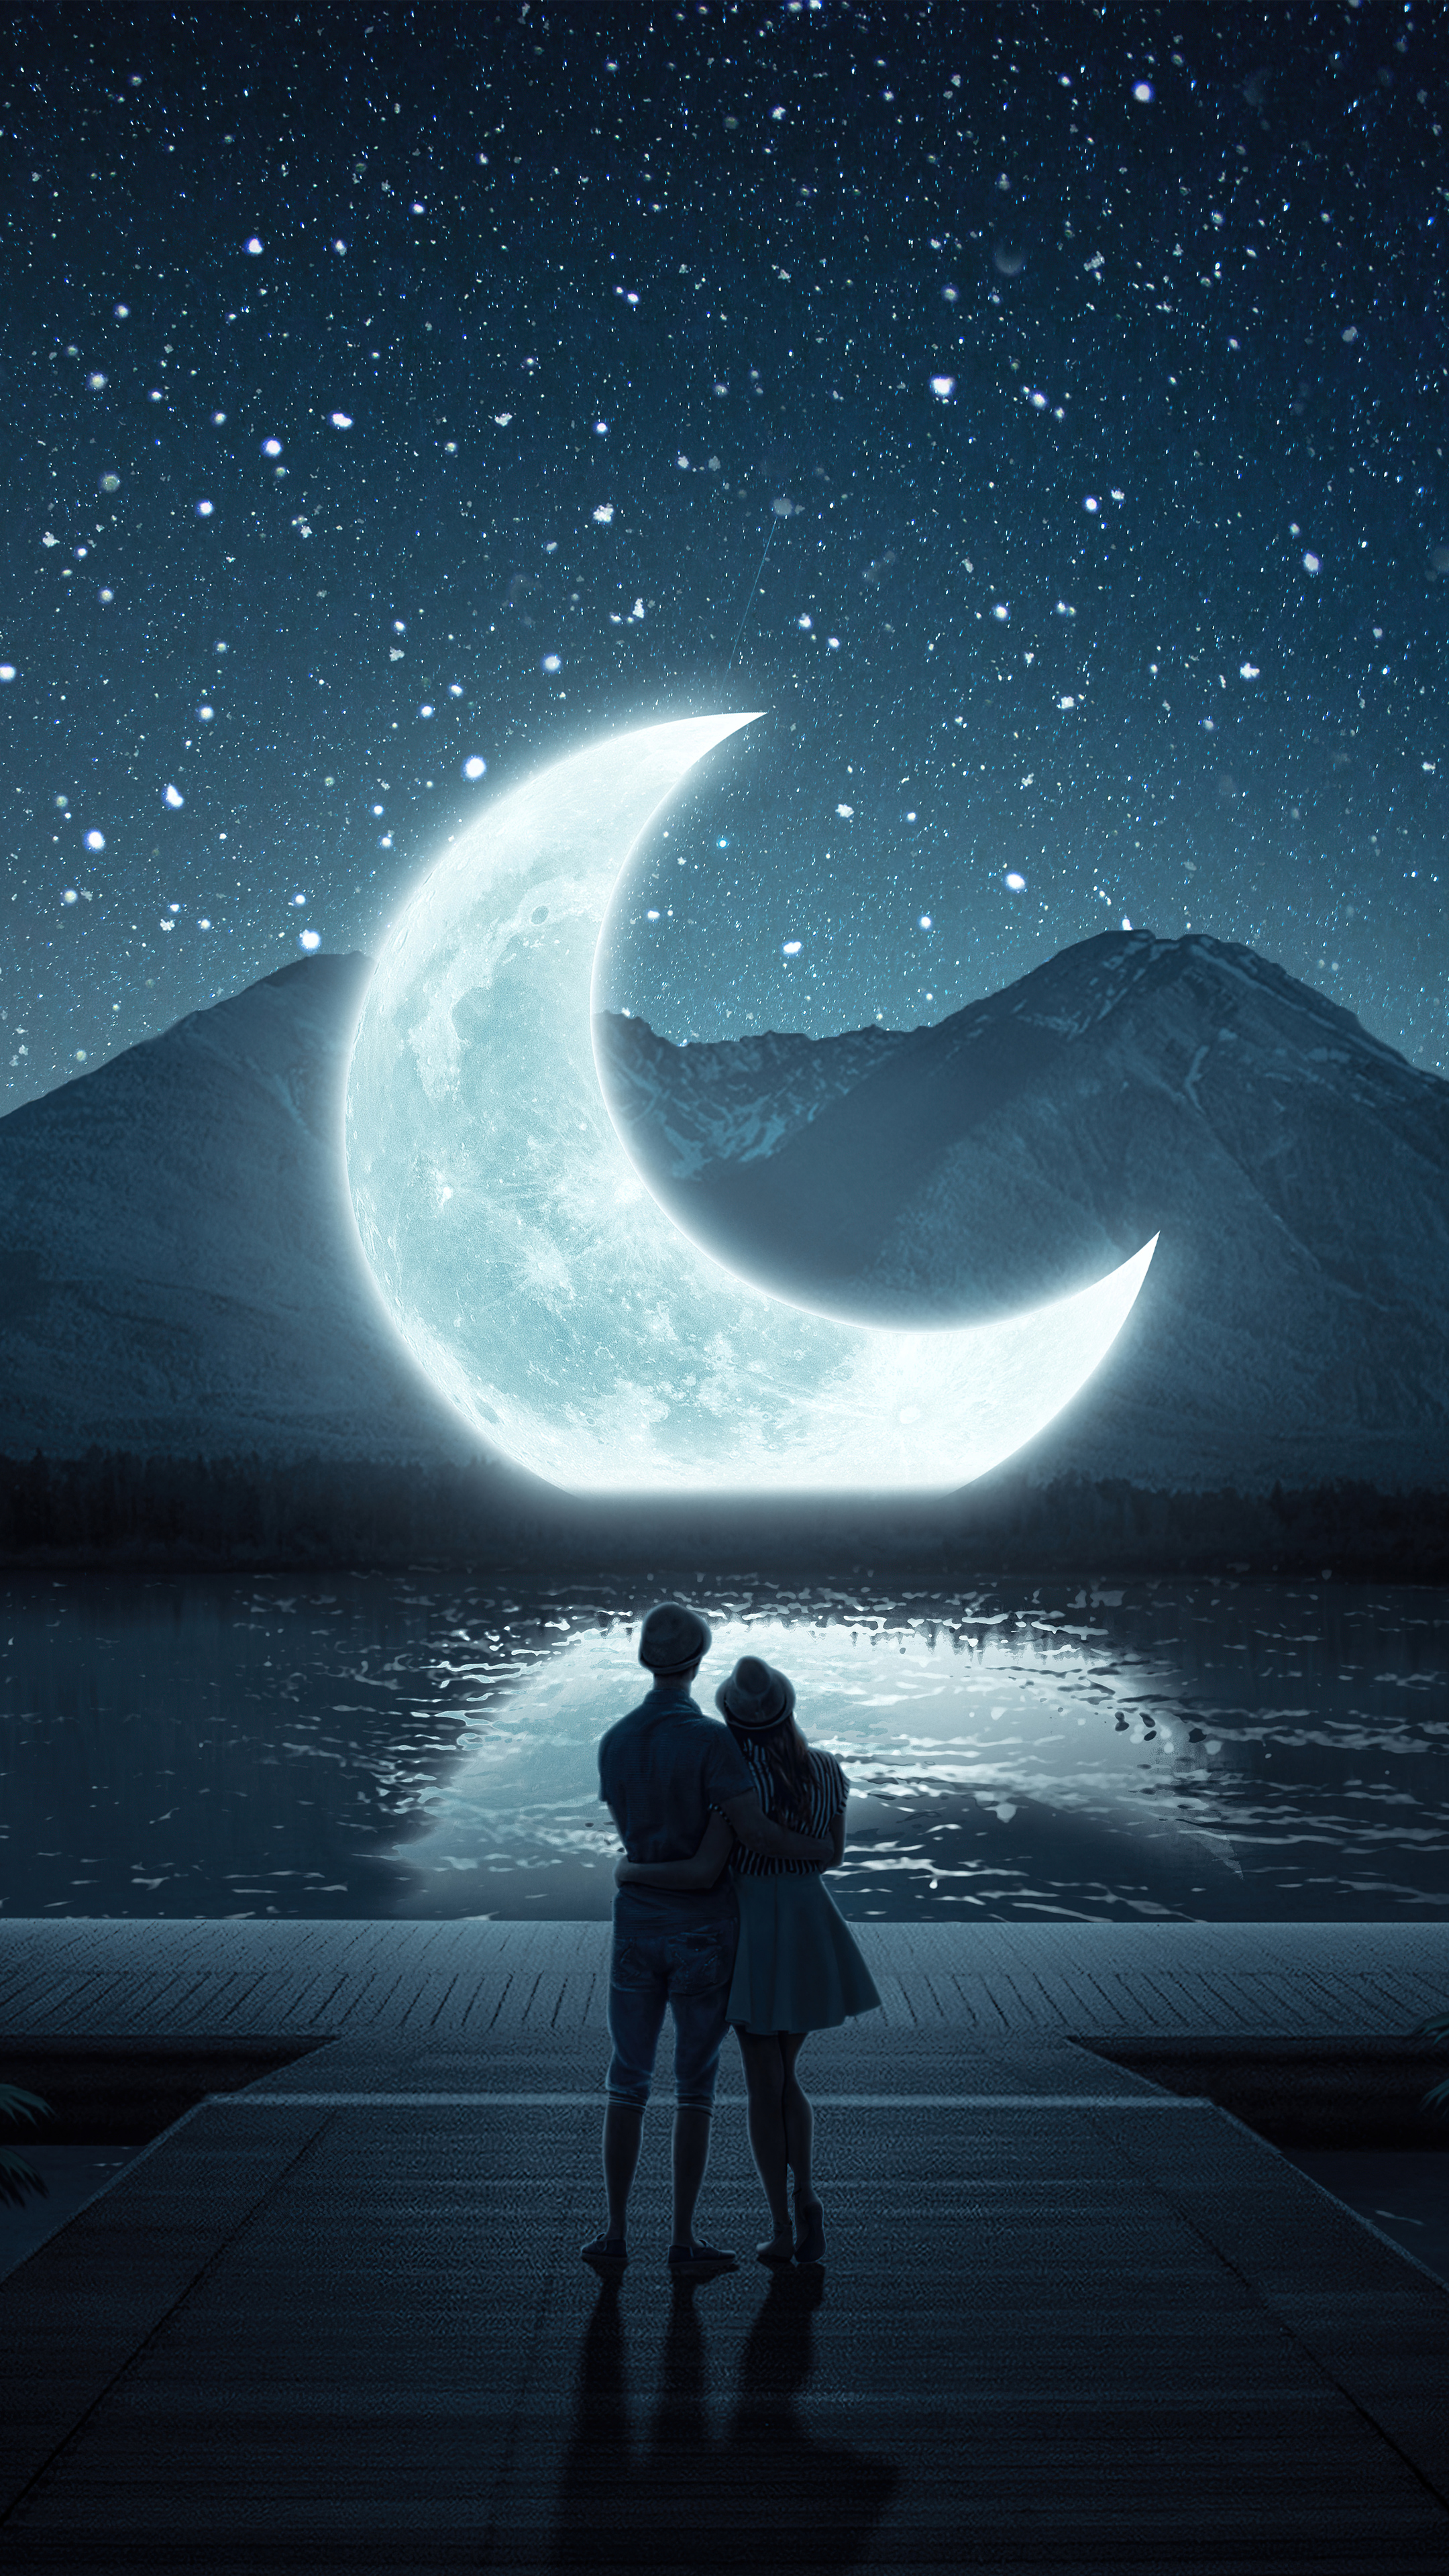 you-asked-for-moon-oa.jpg